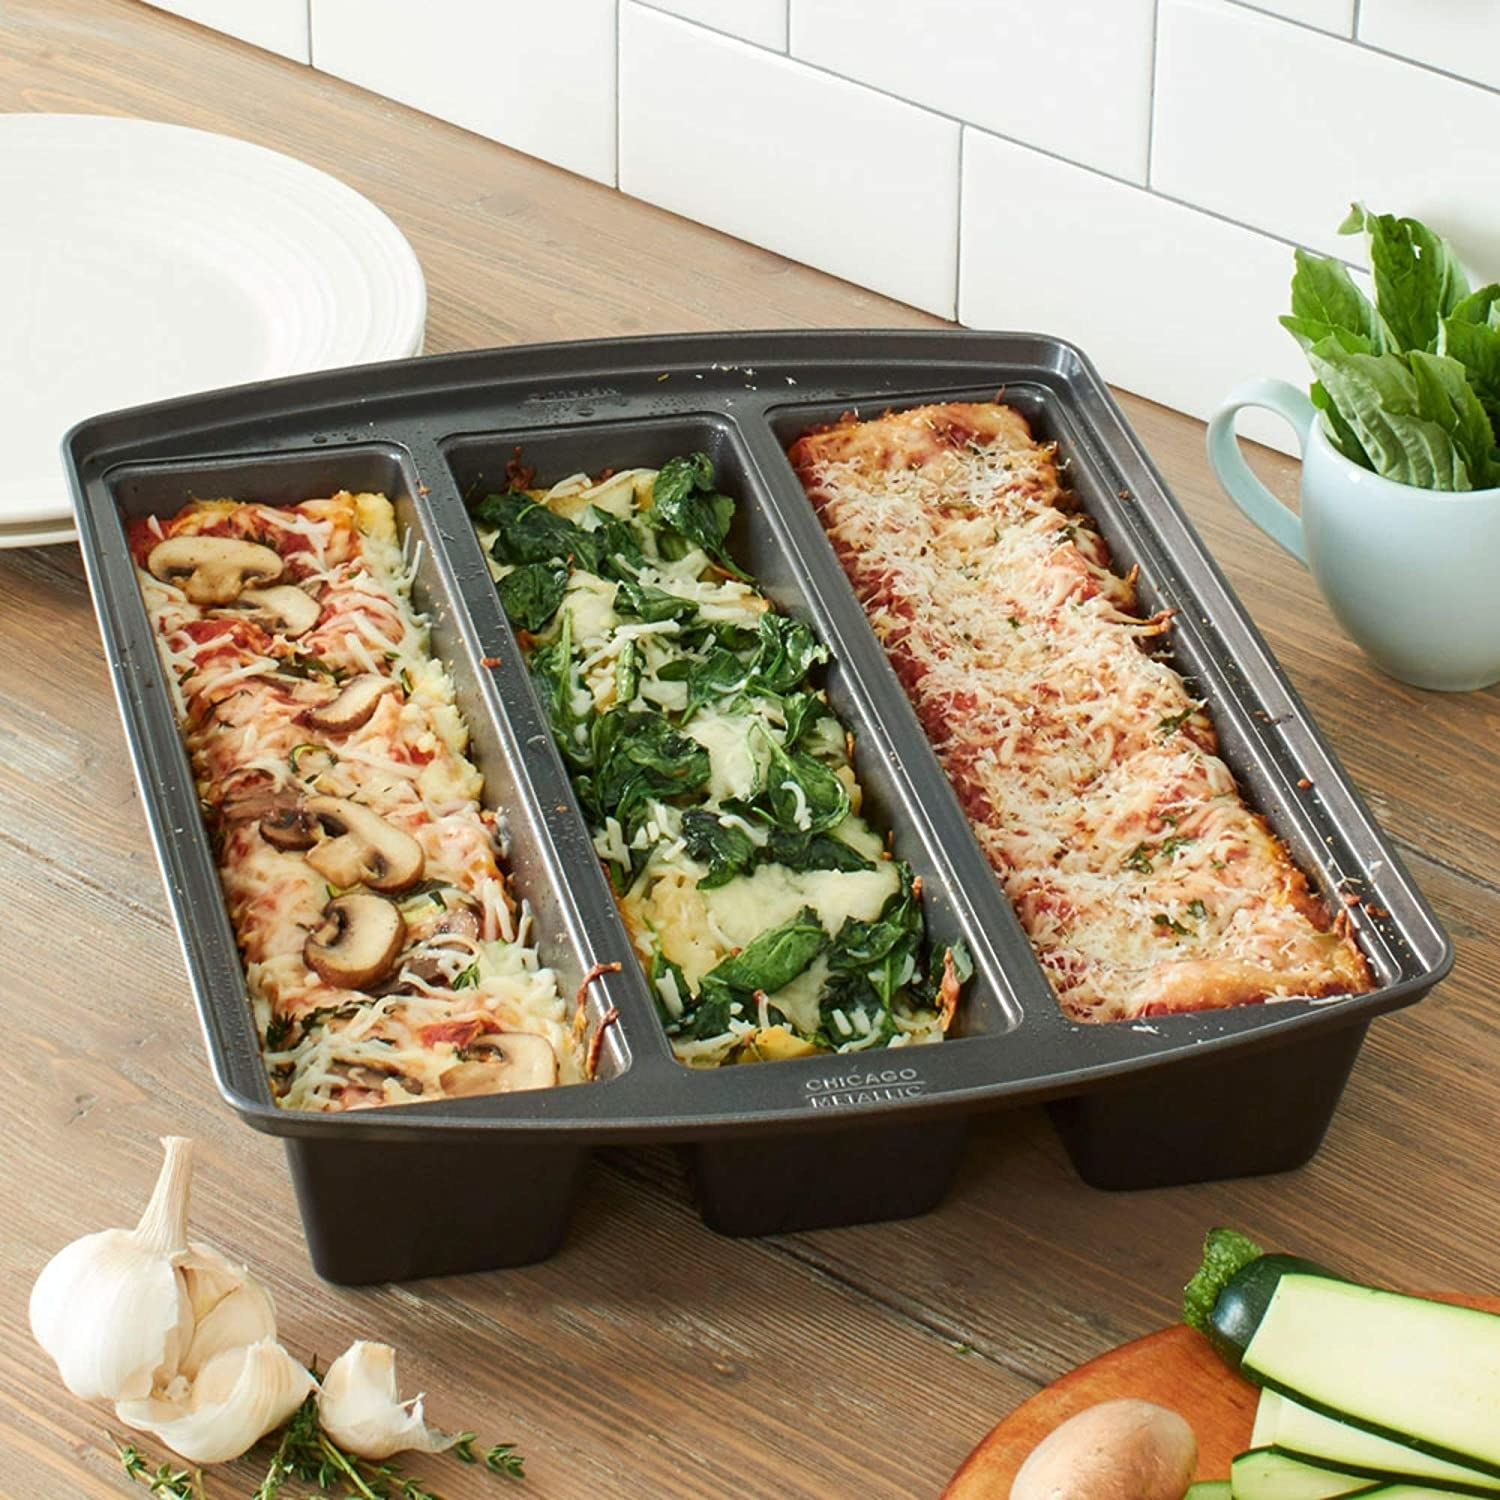 The pan with three rectangles of different lasagna in it